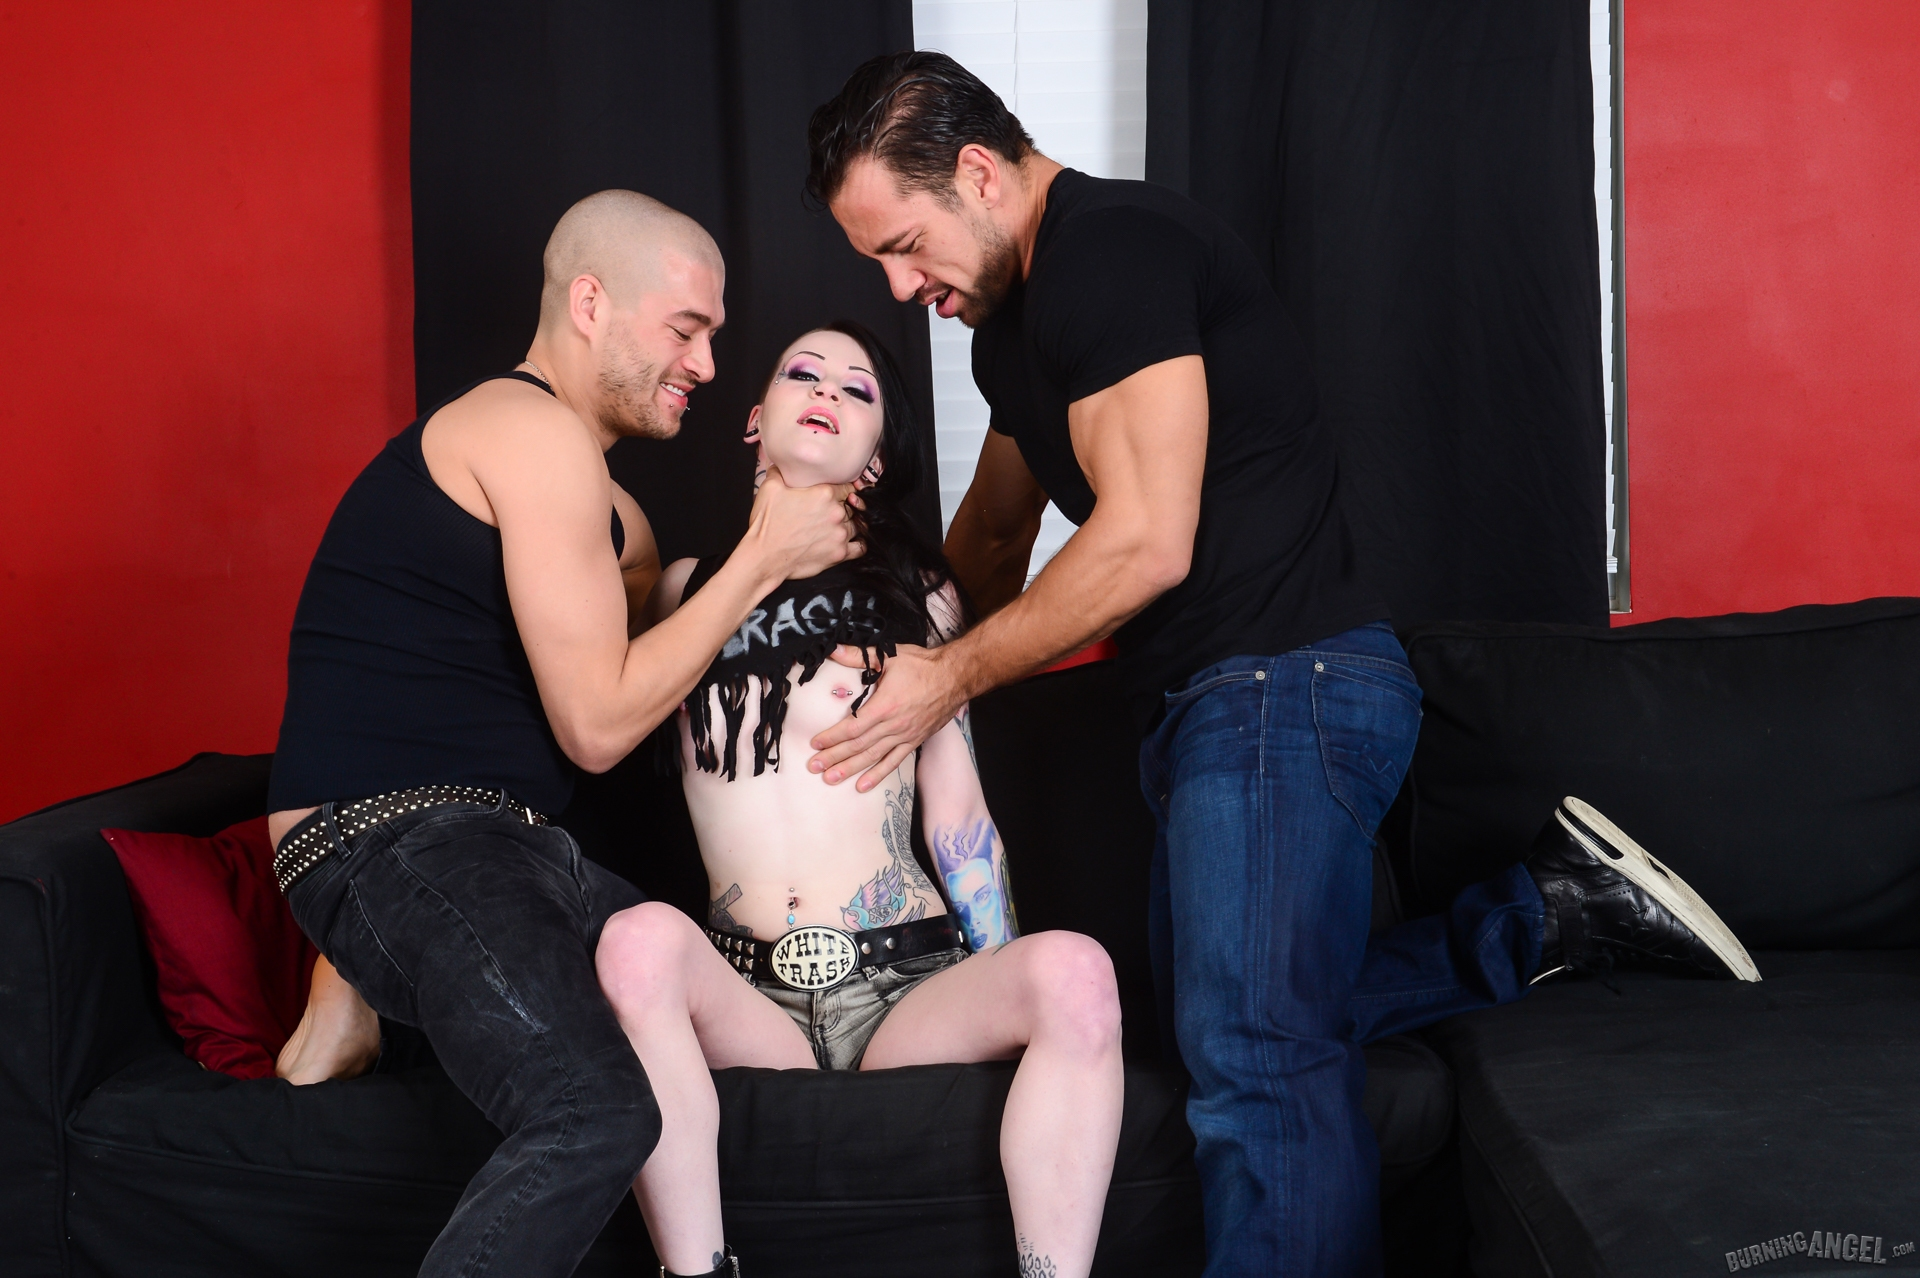 stylish gothic slut sandwiched by two fake producers #2